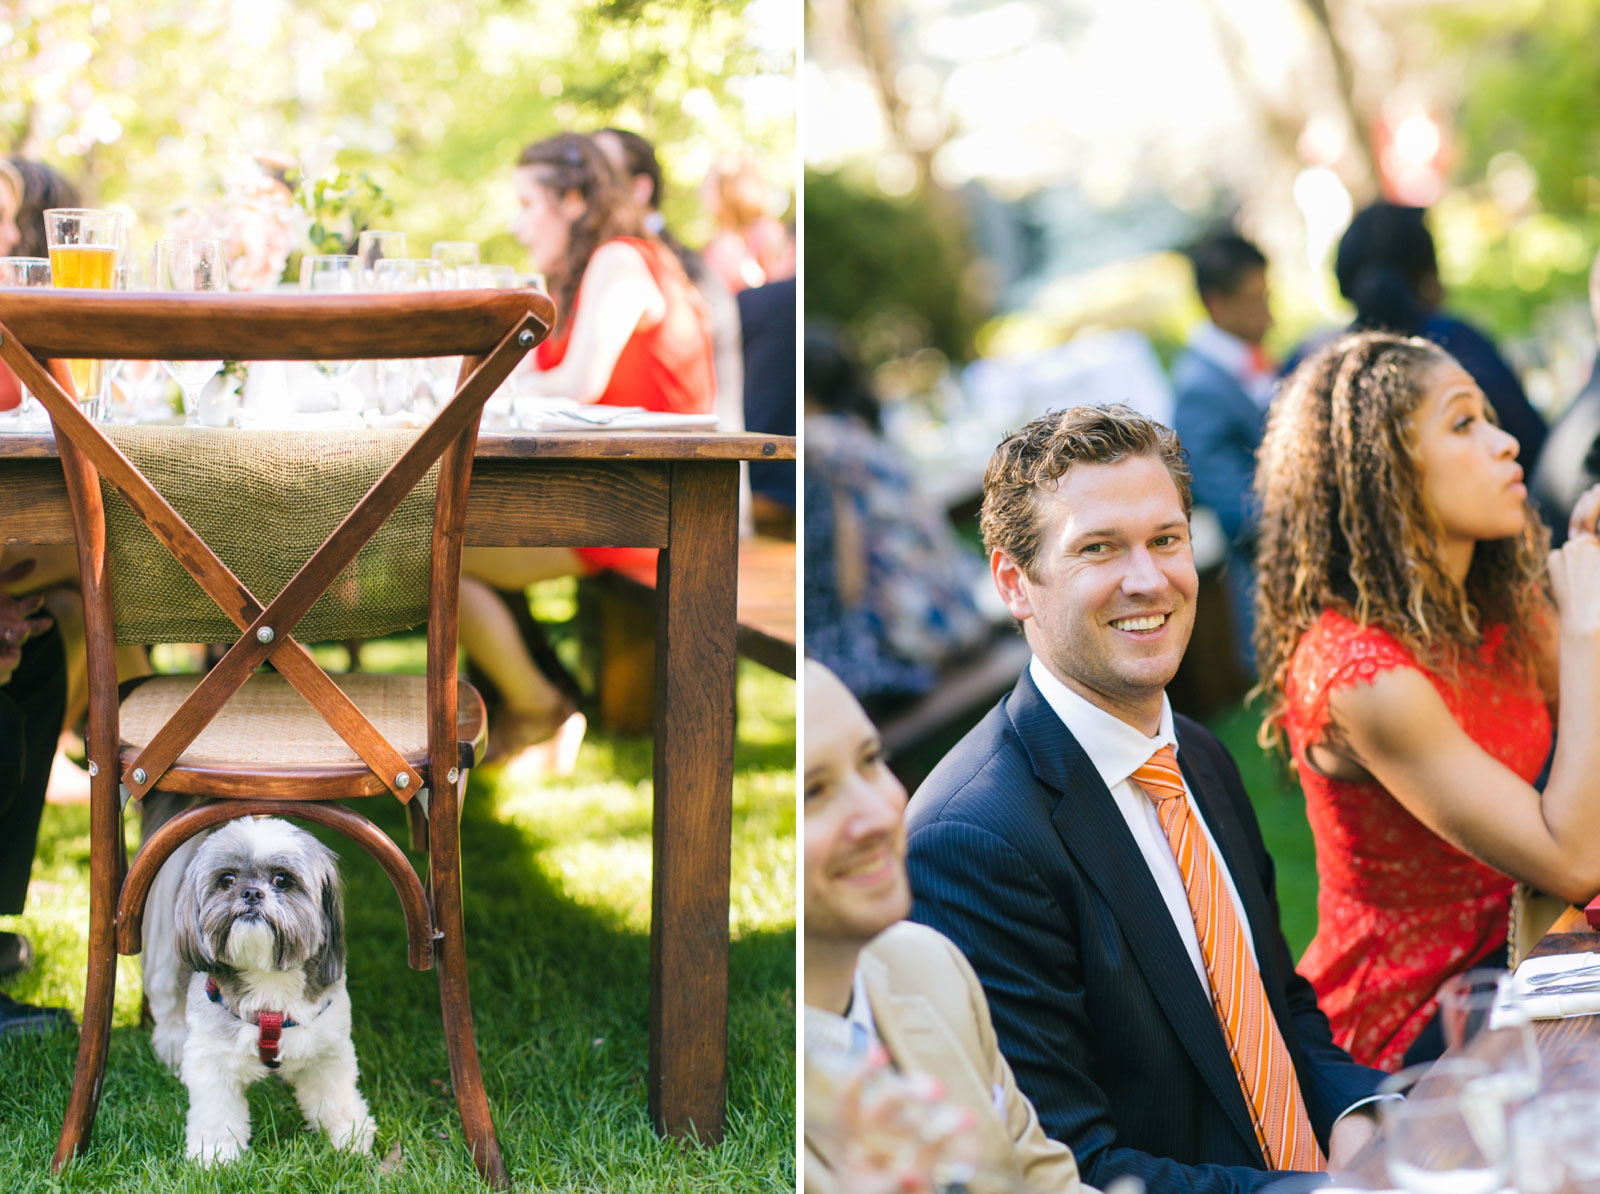 guests finding their seats at outdoor reception at dog-friendly wedding venue in Boston